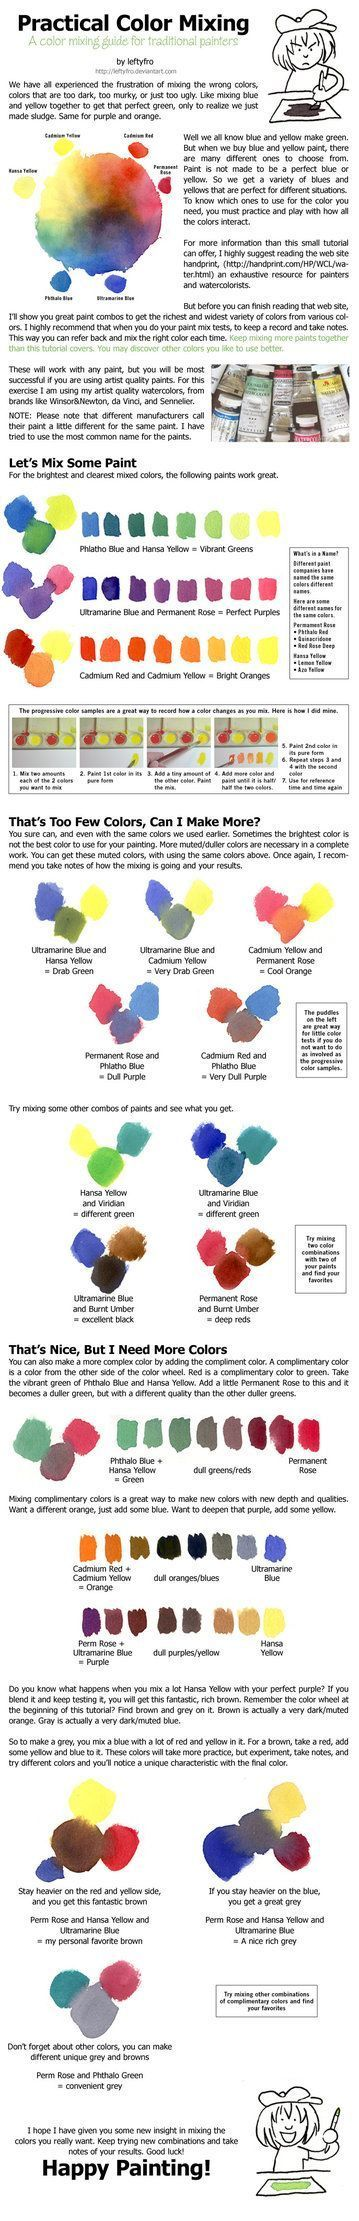 Practical Traditional Paint Color Mixing Tutorial I made this with my watercolors, but it can be used as a guide for acrylic paints and oil paints. I had a very hard time with watercolors for a ver... #OilPainting